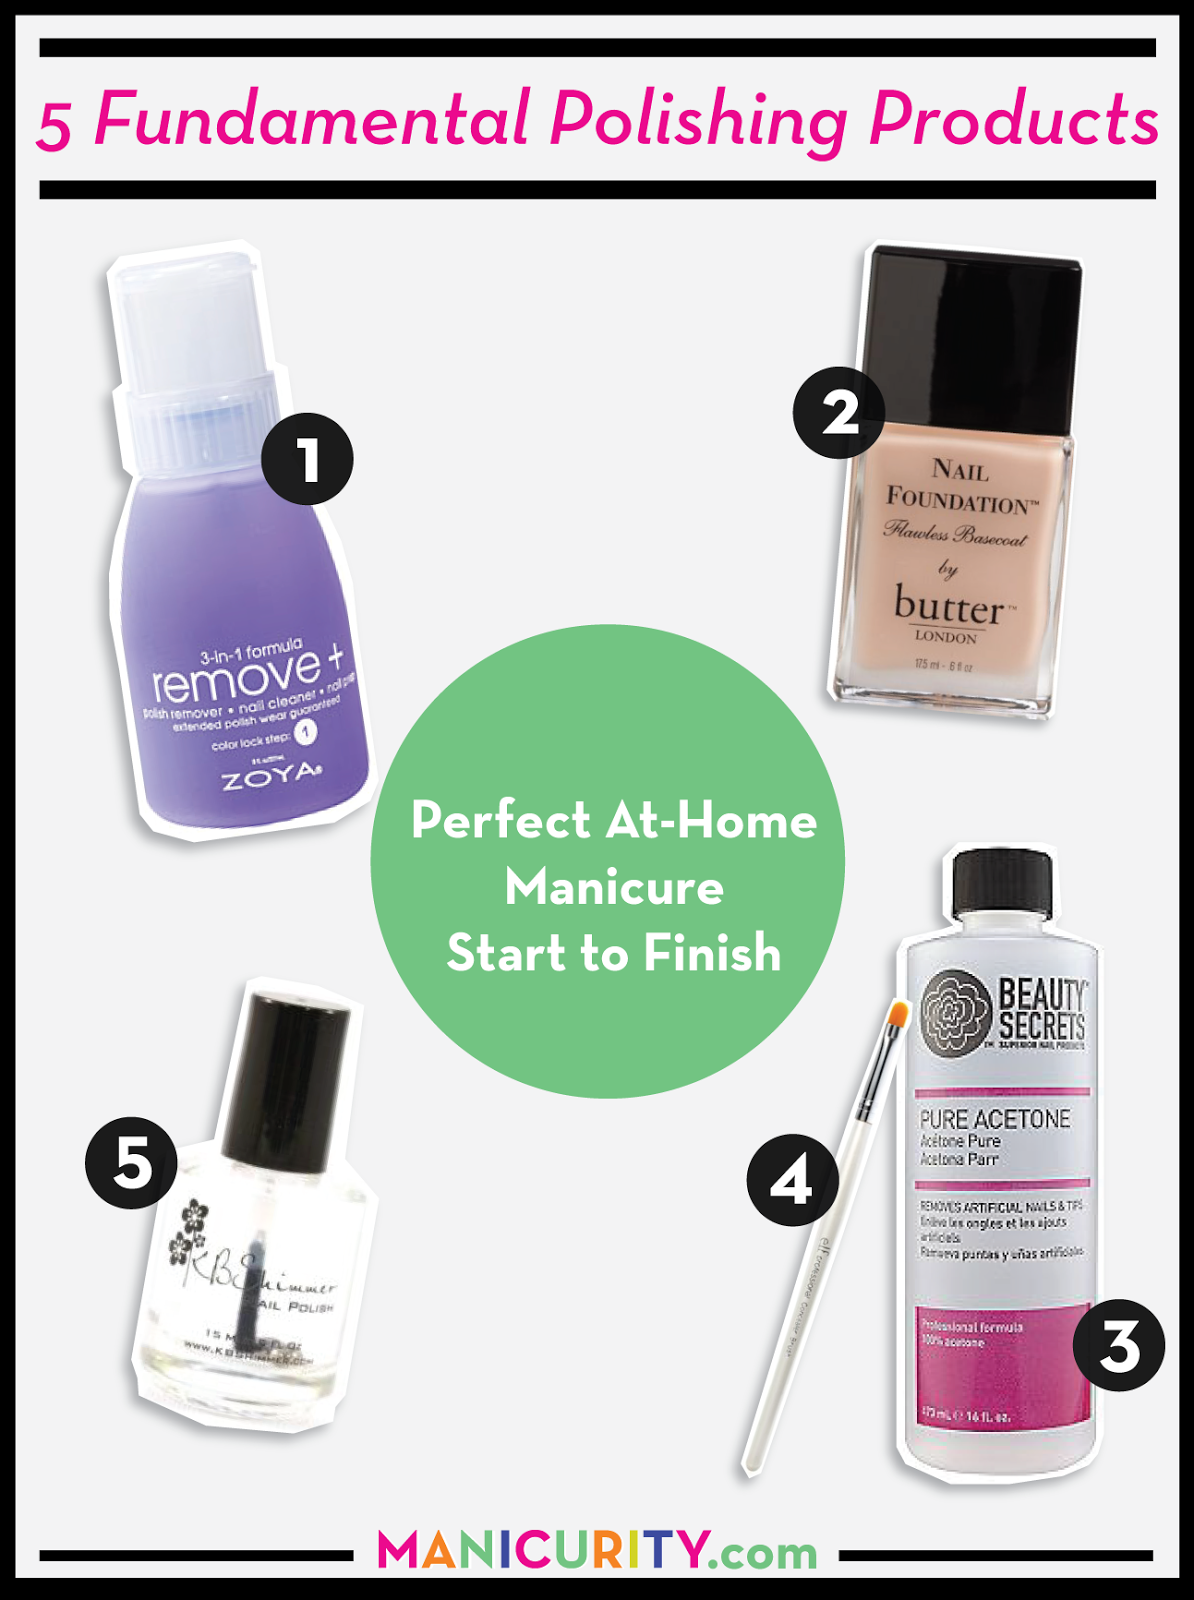 Friday Five | 5 Fundamental Polishing Products - Perfect Products to DIY an At-Home Manicure From Start to Finish - Manicurity loved and recommends! Featuring Zoya, e.l.f., butterLondon, and KBShimmer | Manicurity.com